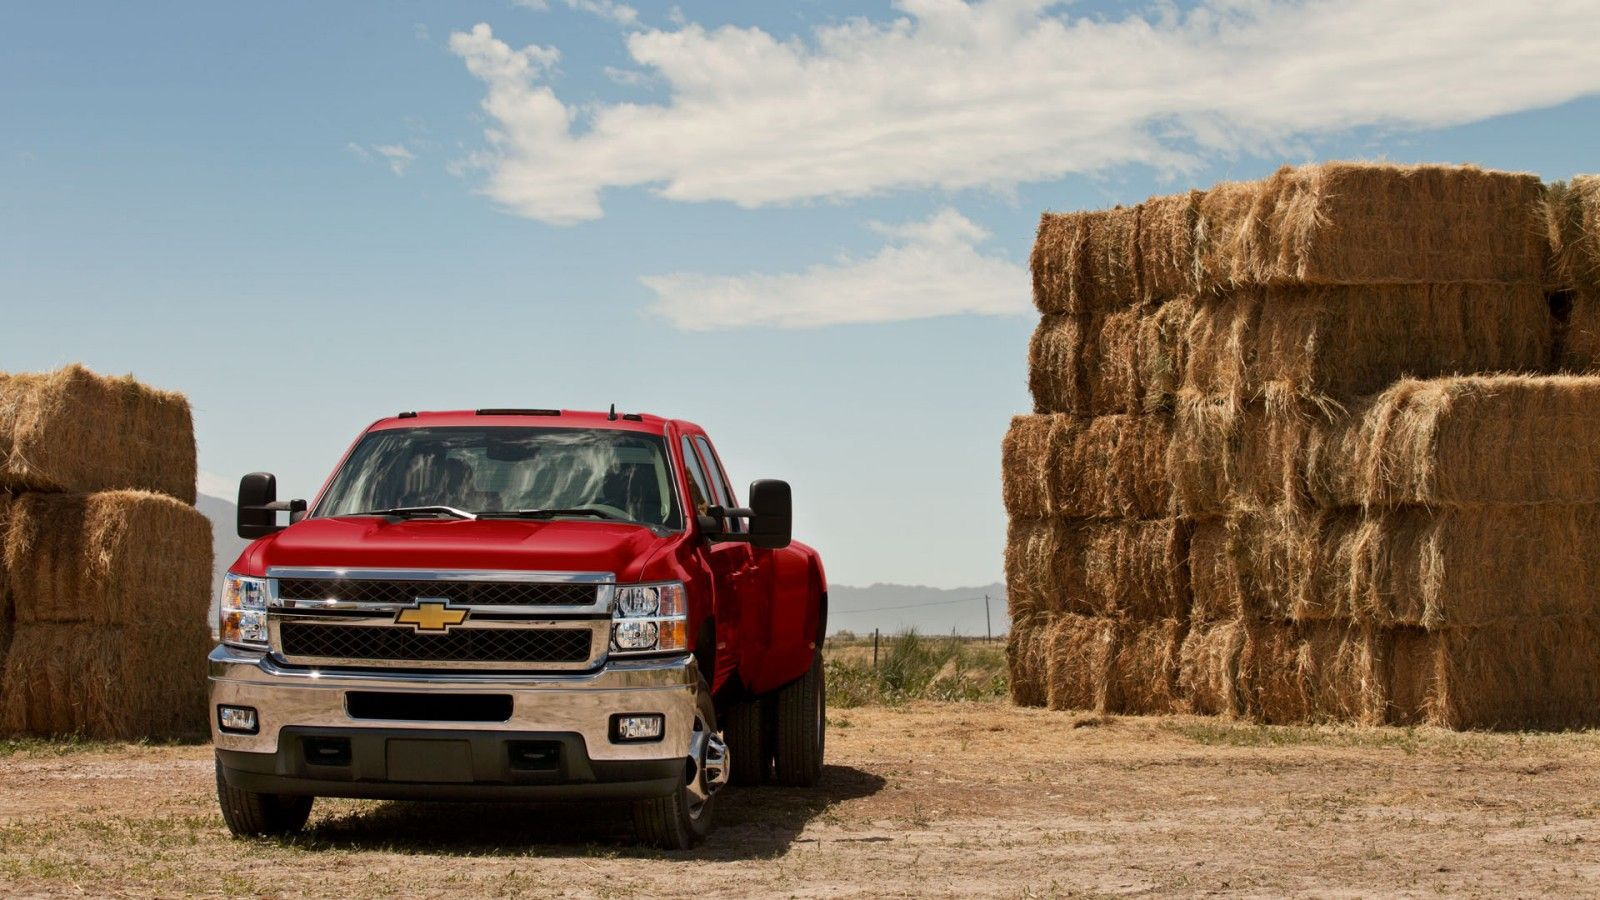 J.D. Power & Associates Rates Chevy Vehicles Highly in ...